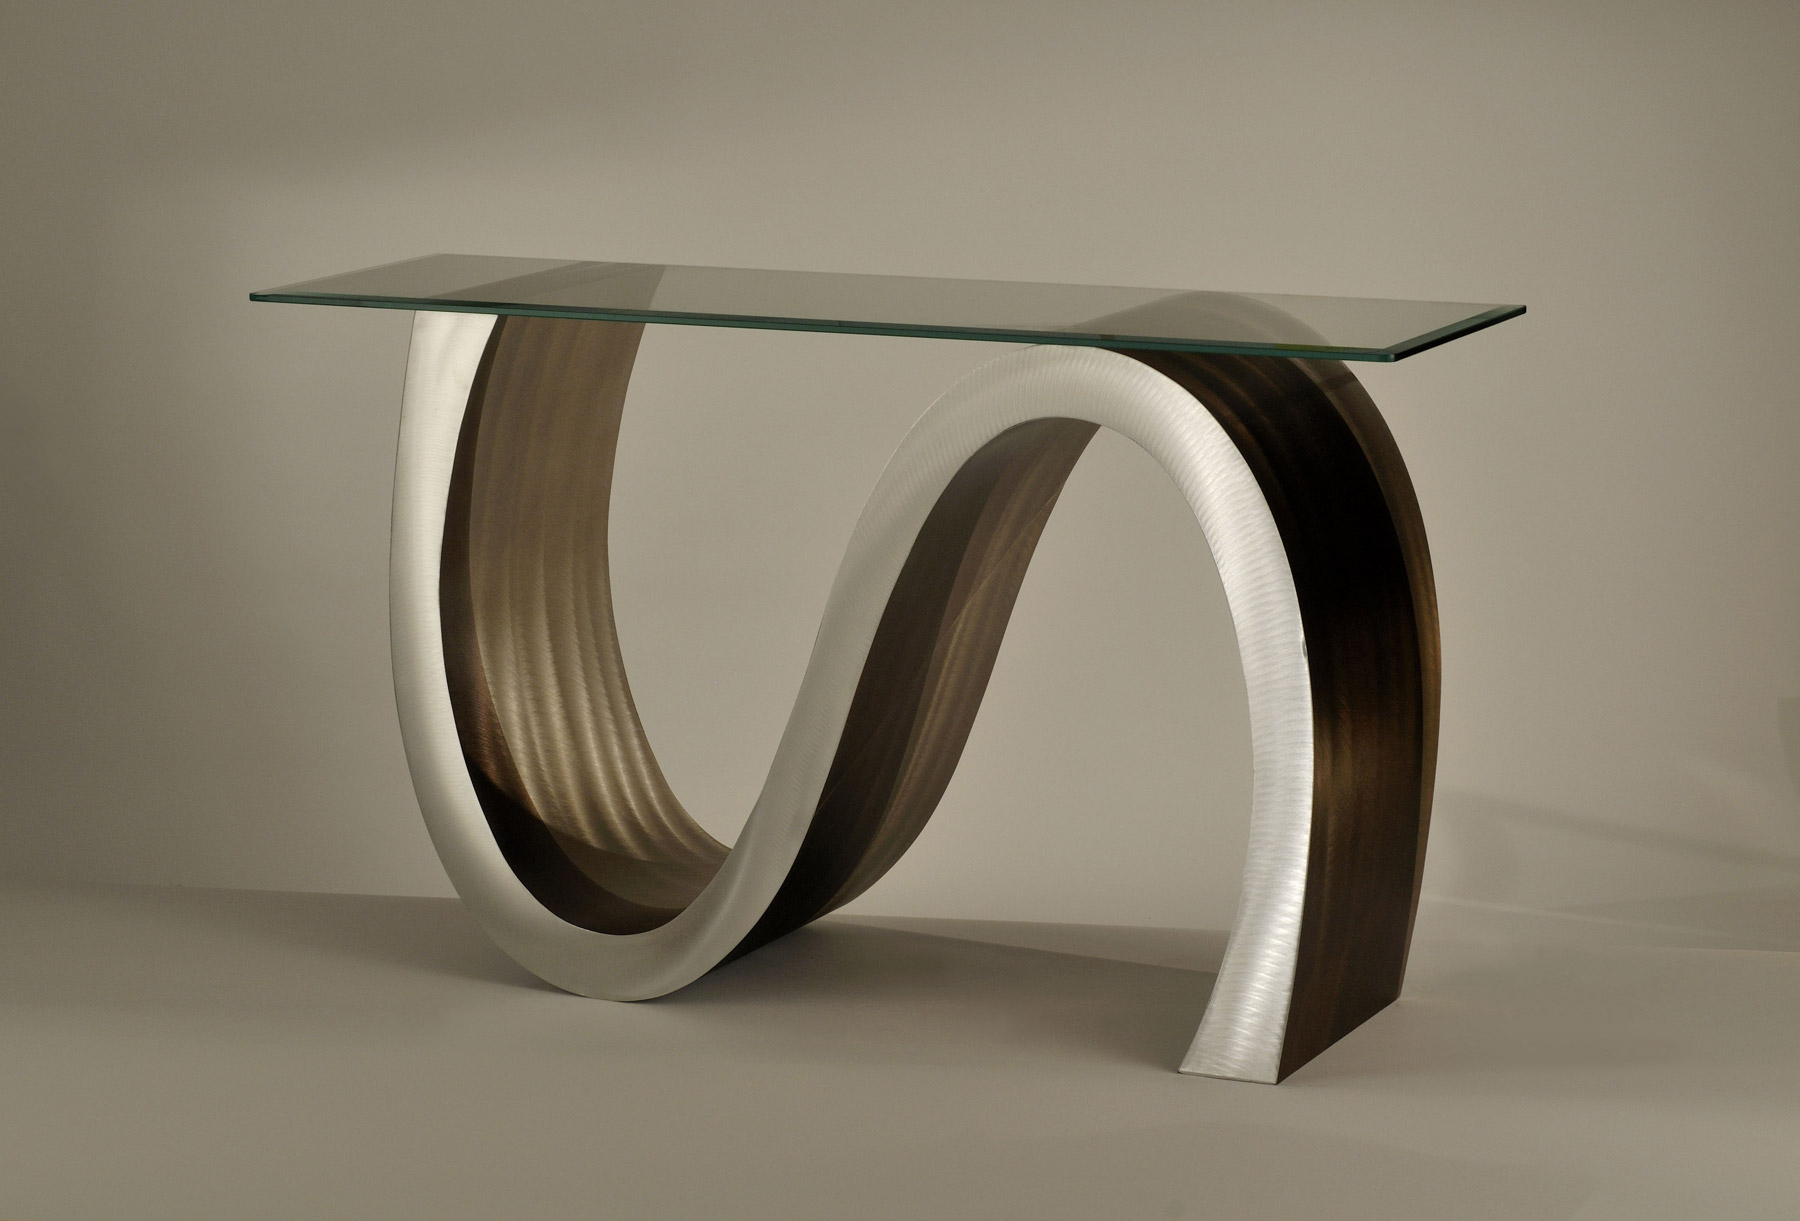 Sofa Table: Appealing Contemporary Sofa Table Design Skinny Console inside Parsons Walnut Top & Brass Base 48X16 Console Tables (Image 23 of 30)